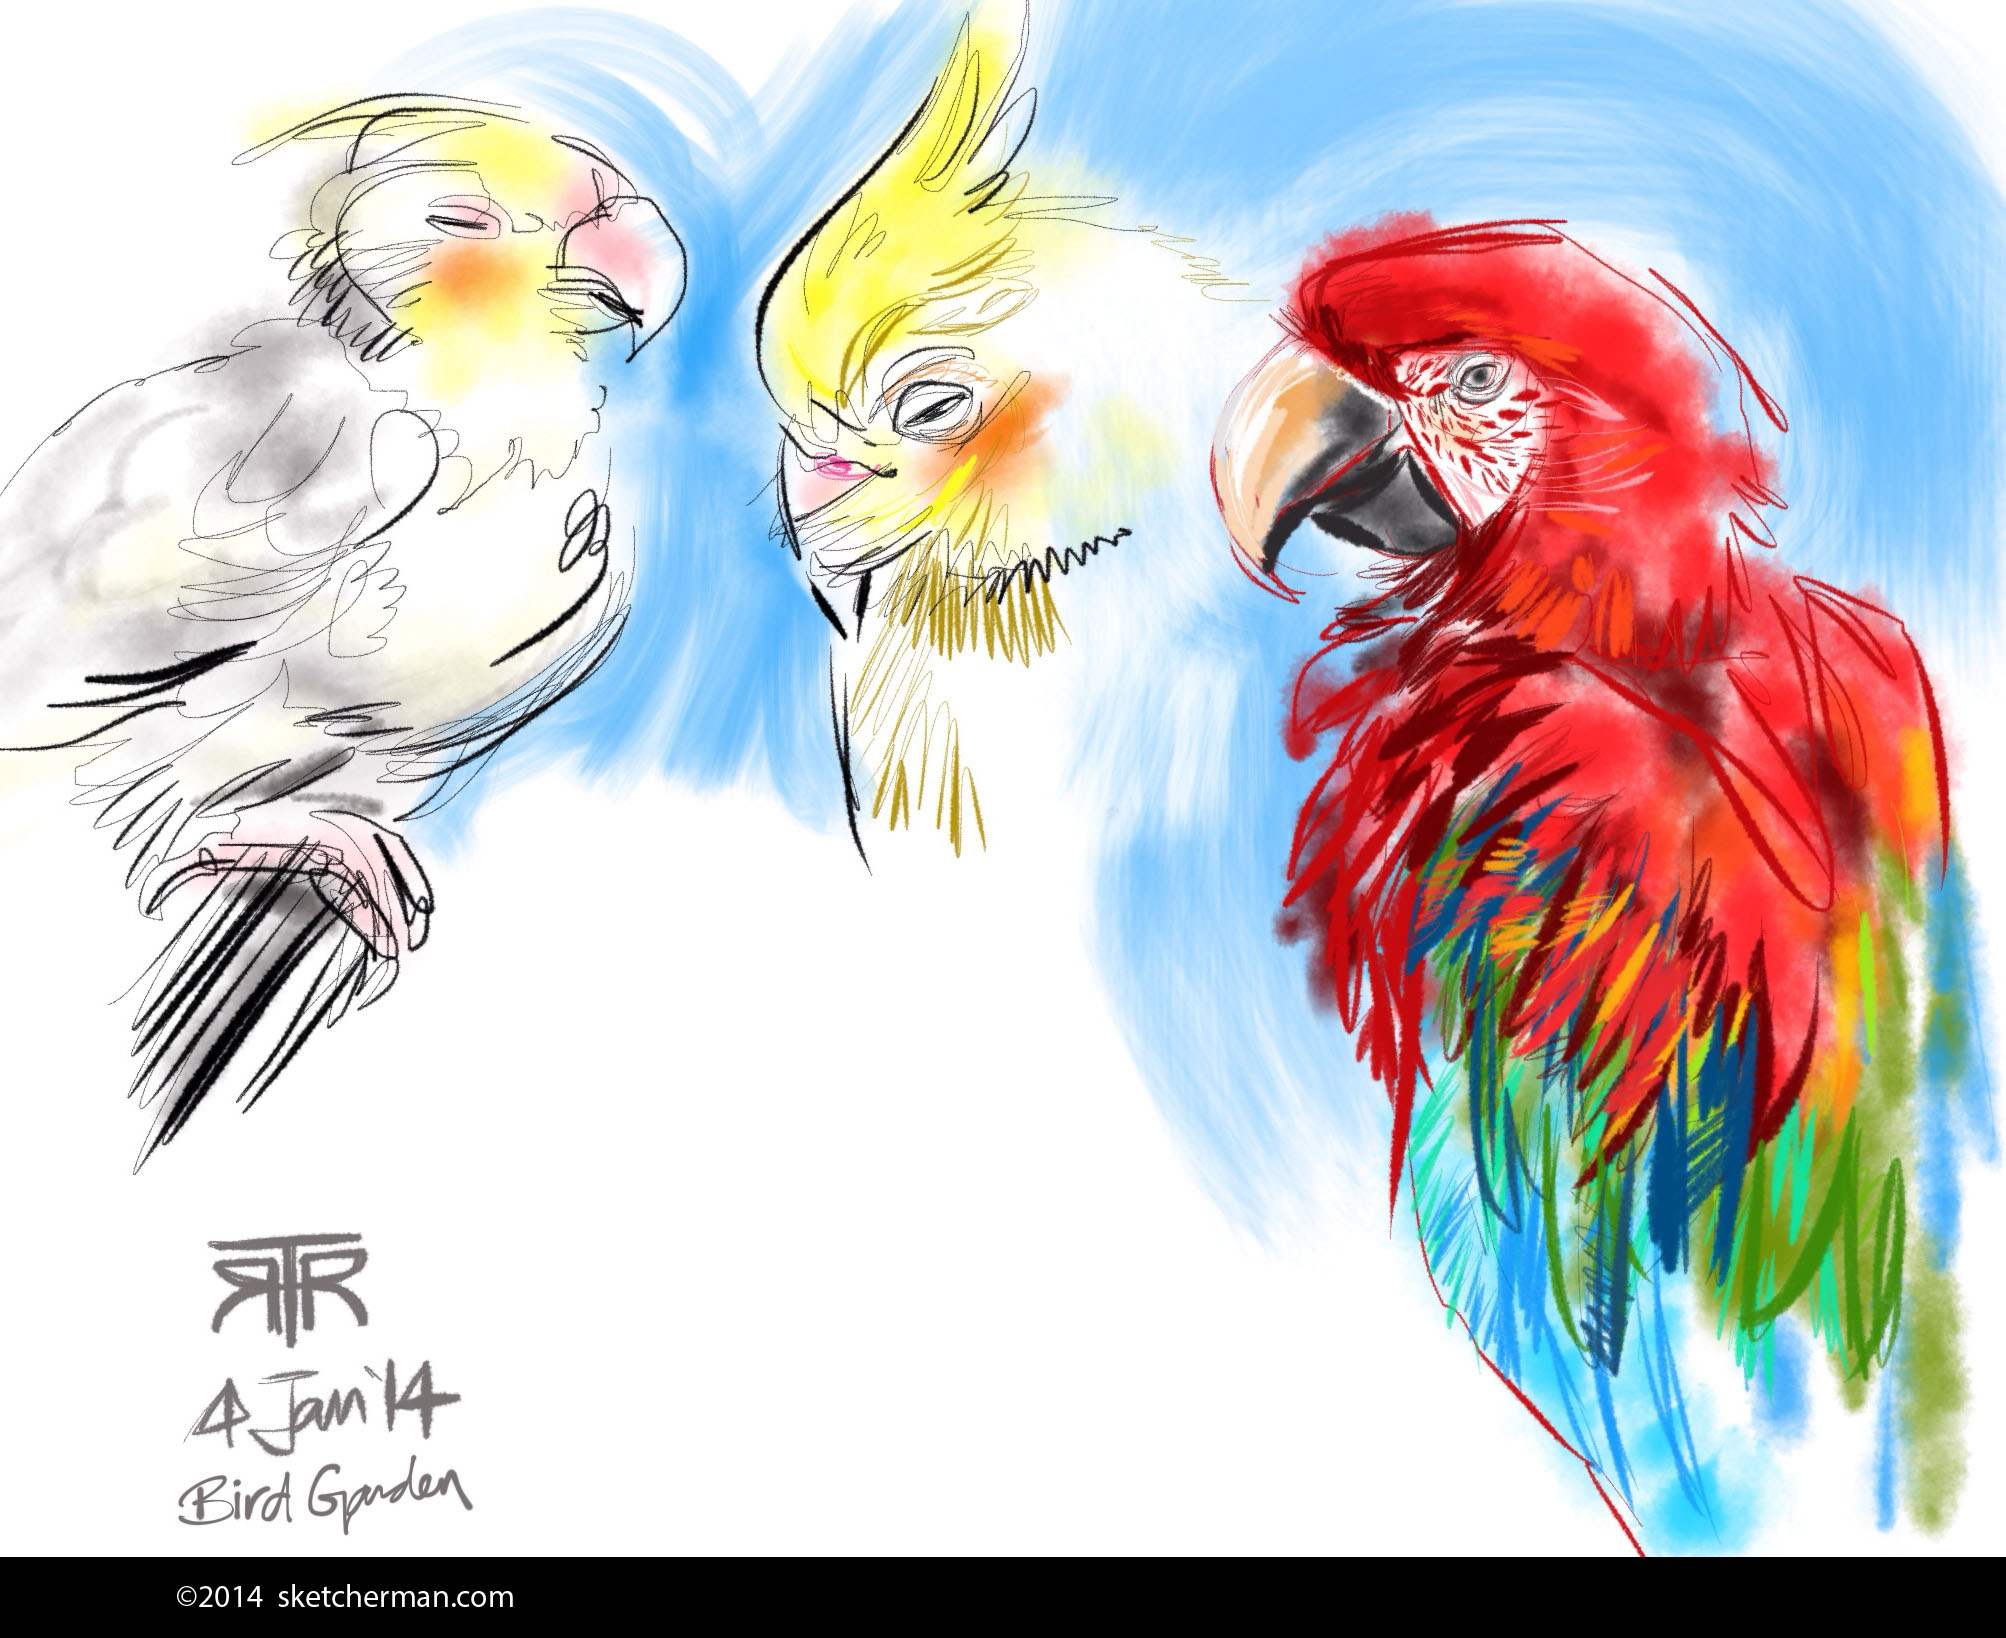 4Jan14-RRT-Birds.JPG